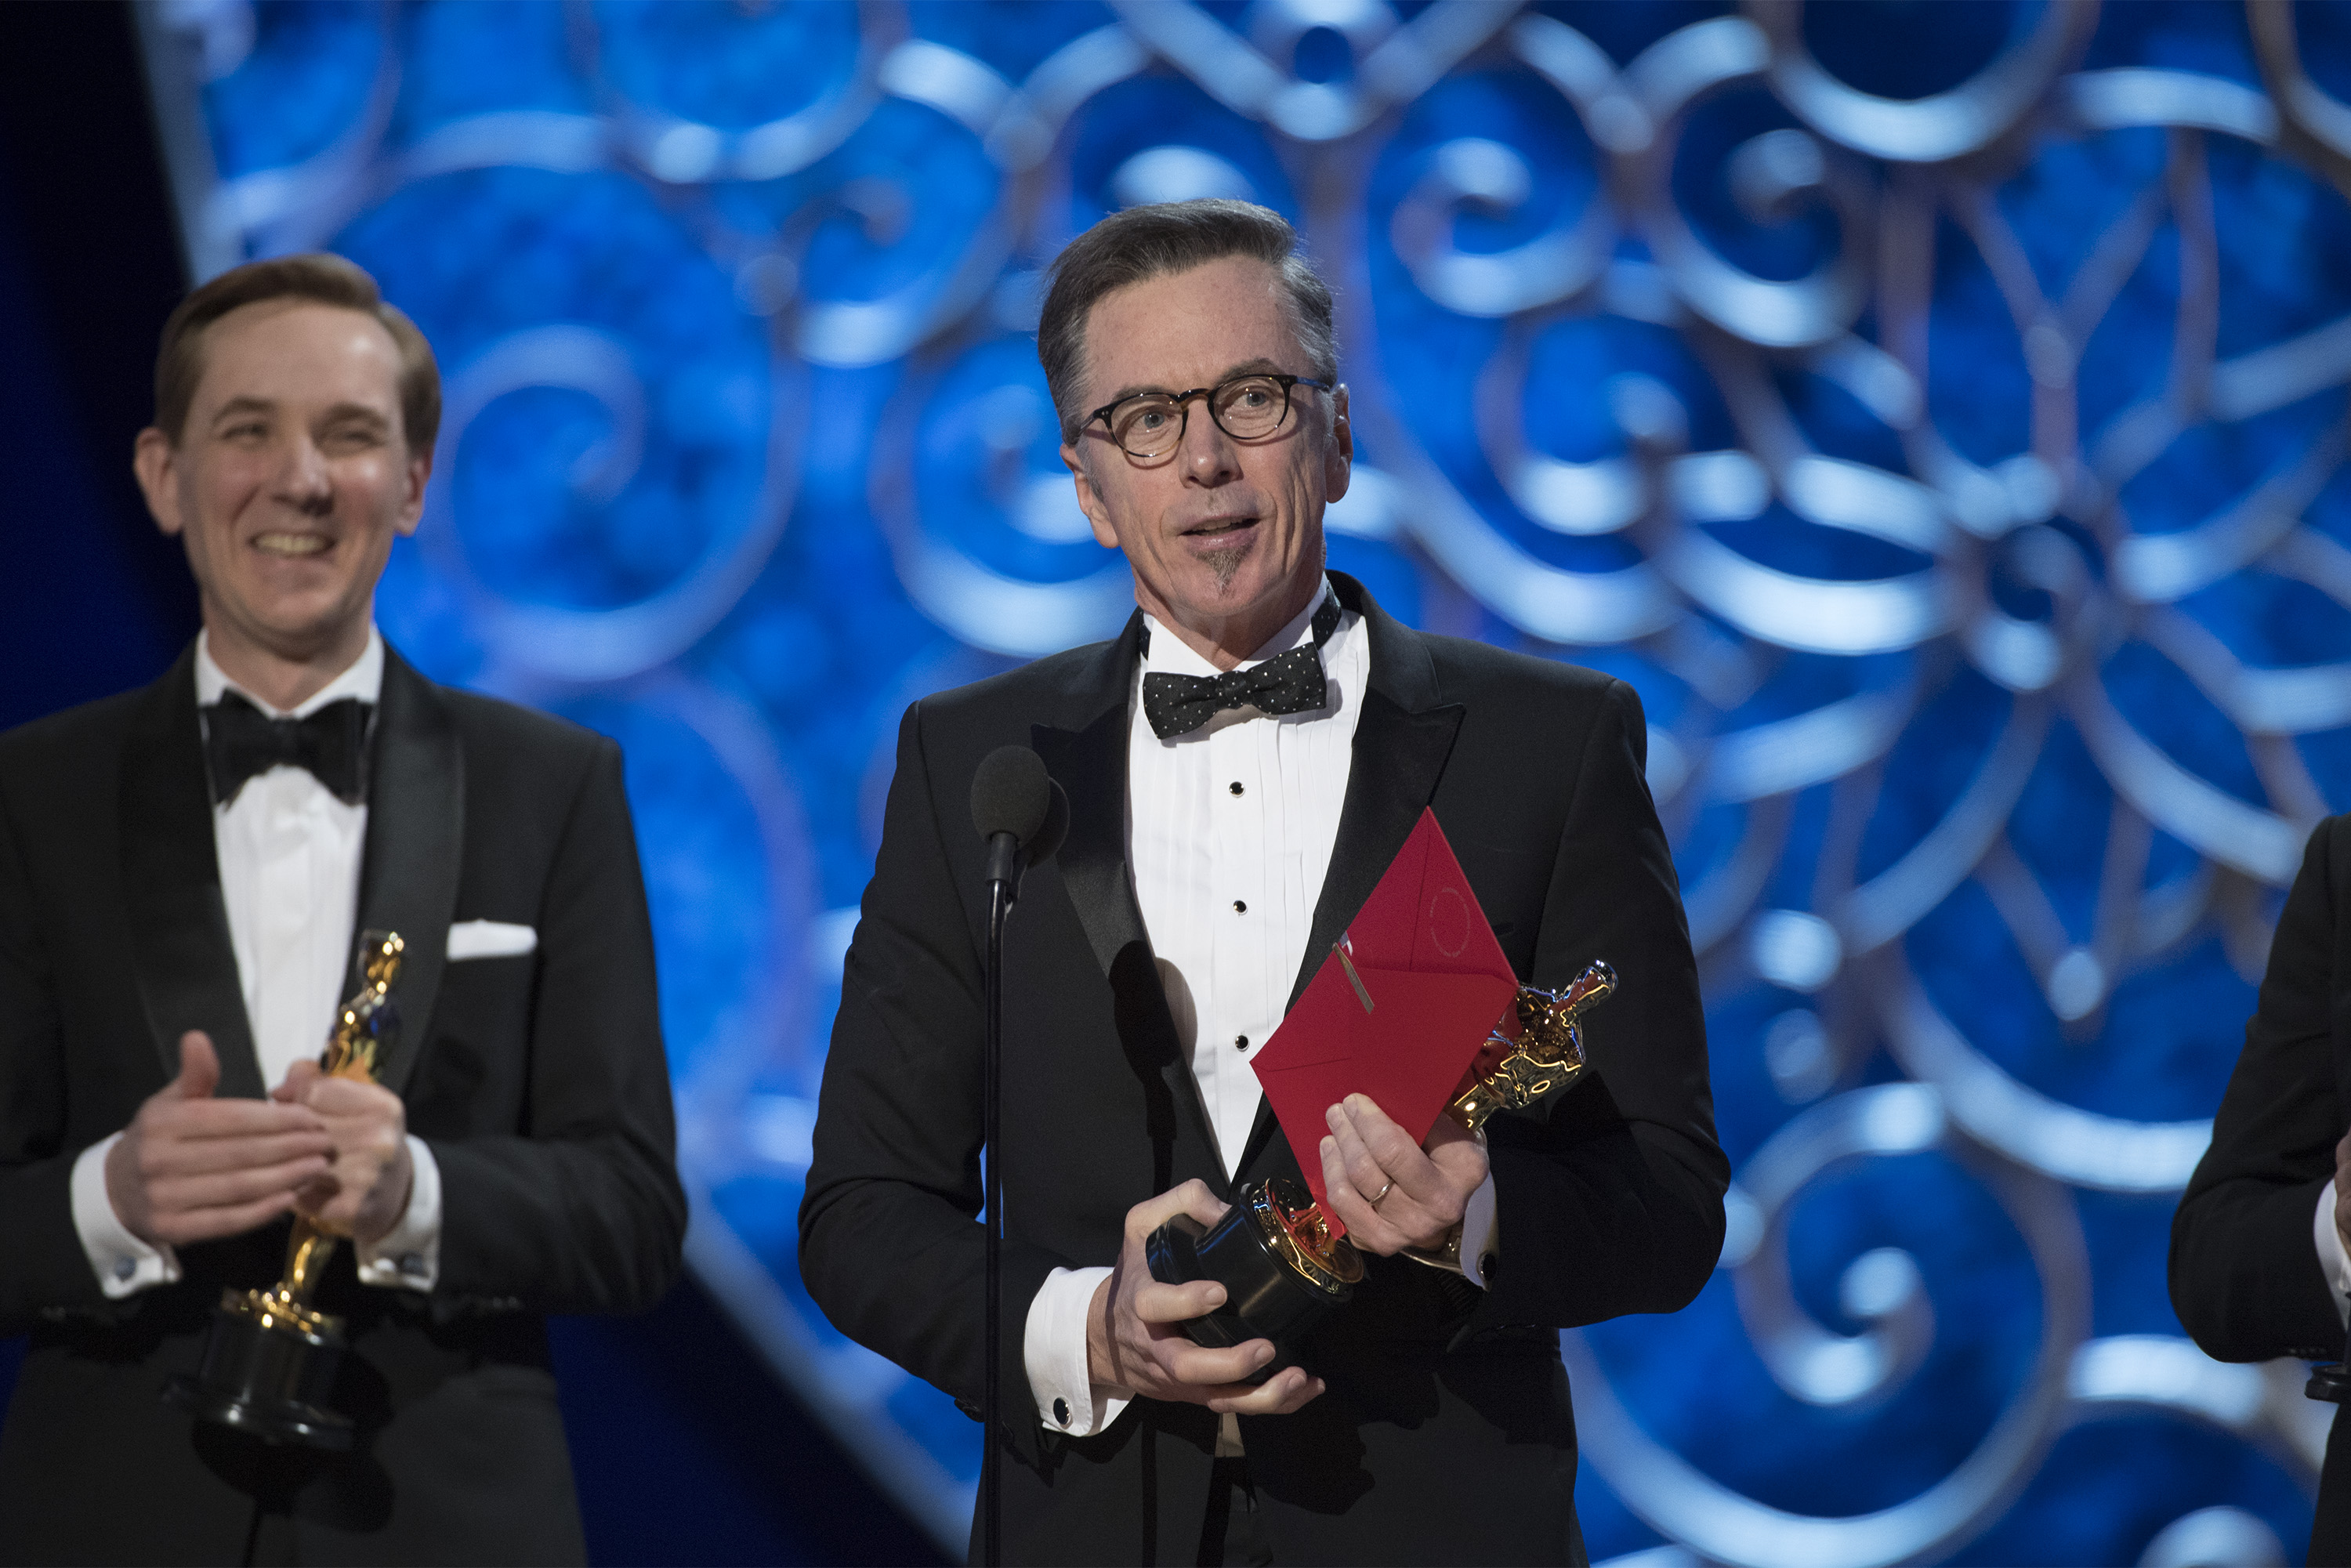 Sound mixer Kevin O'Connell FINALLY wins an Oscar after 21 nominations